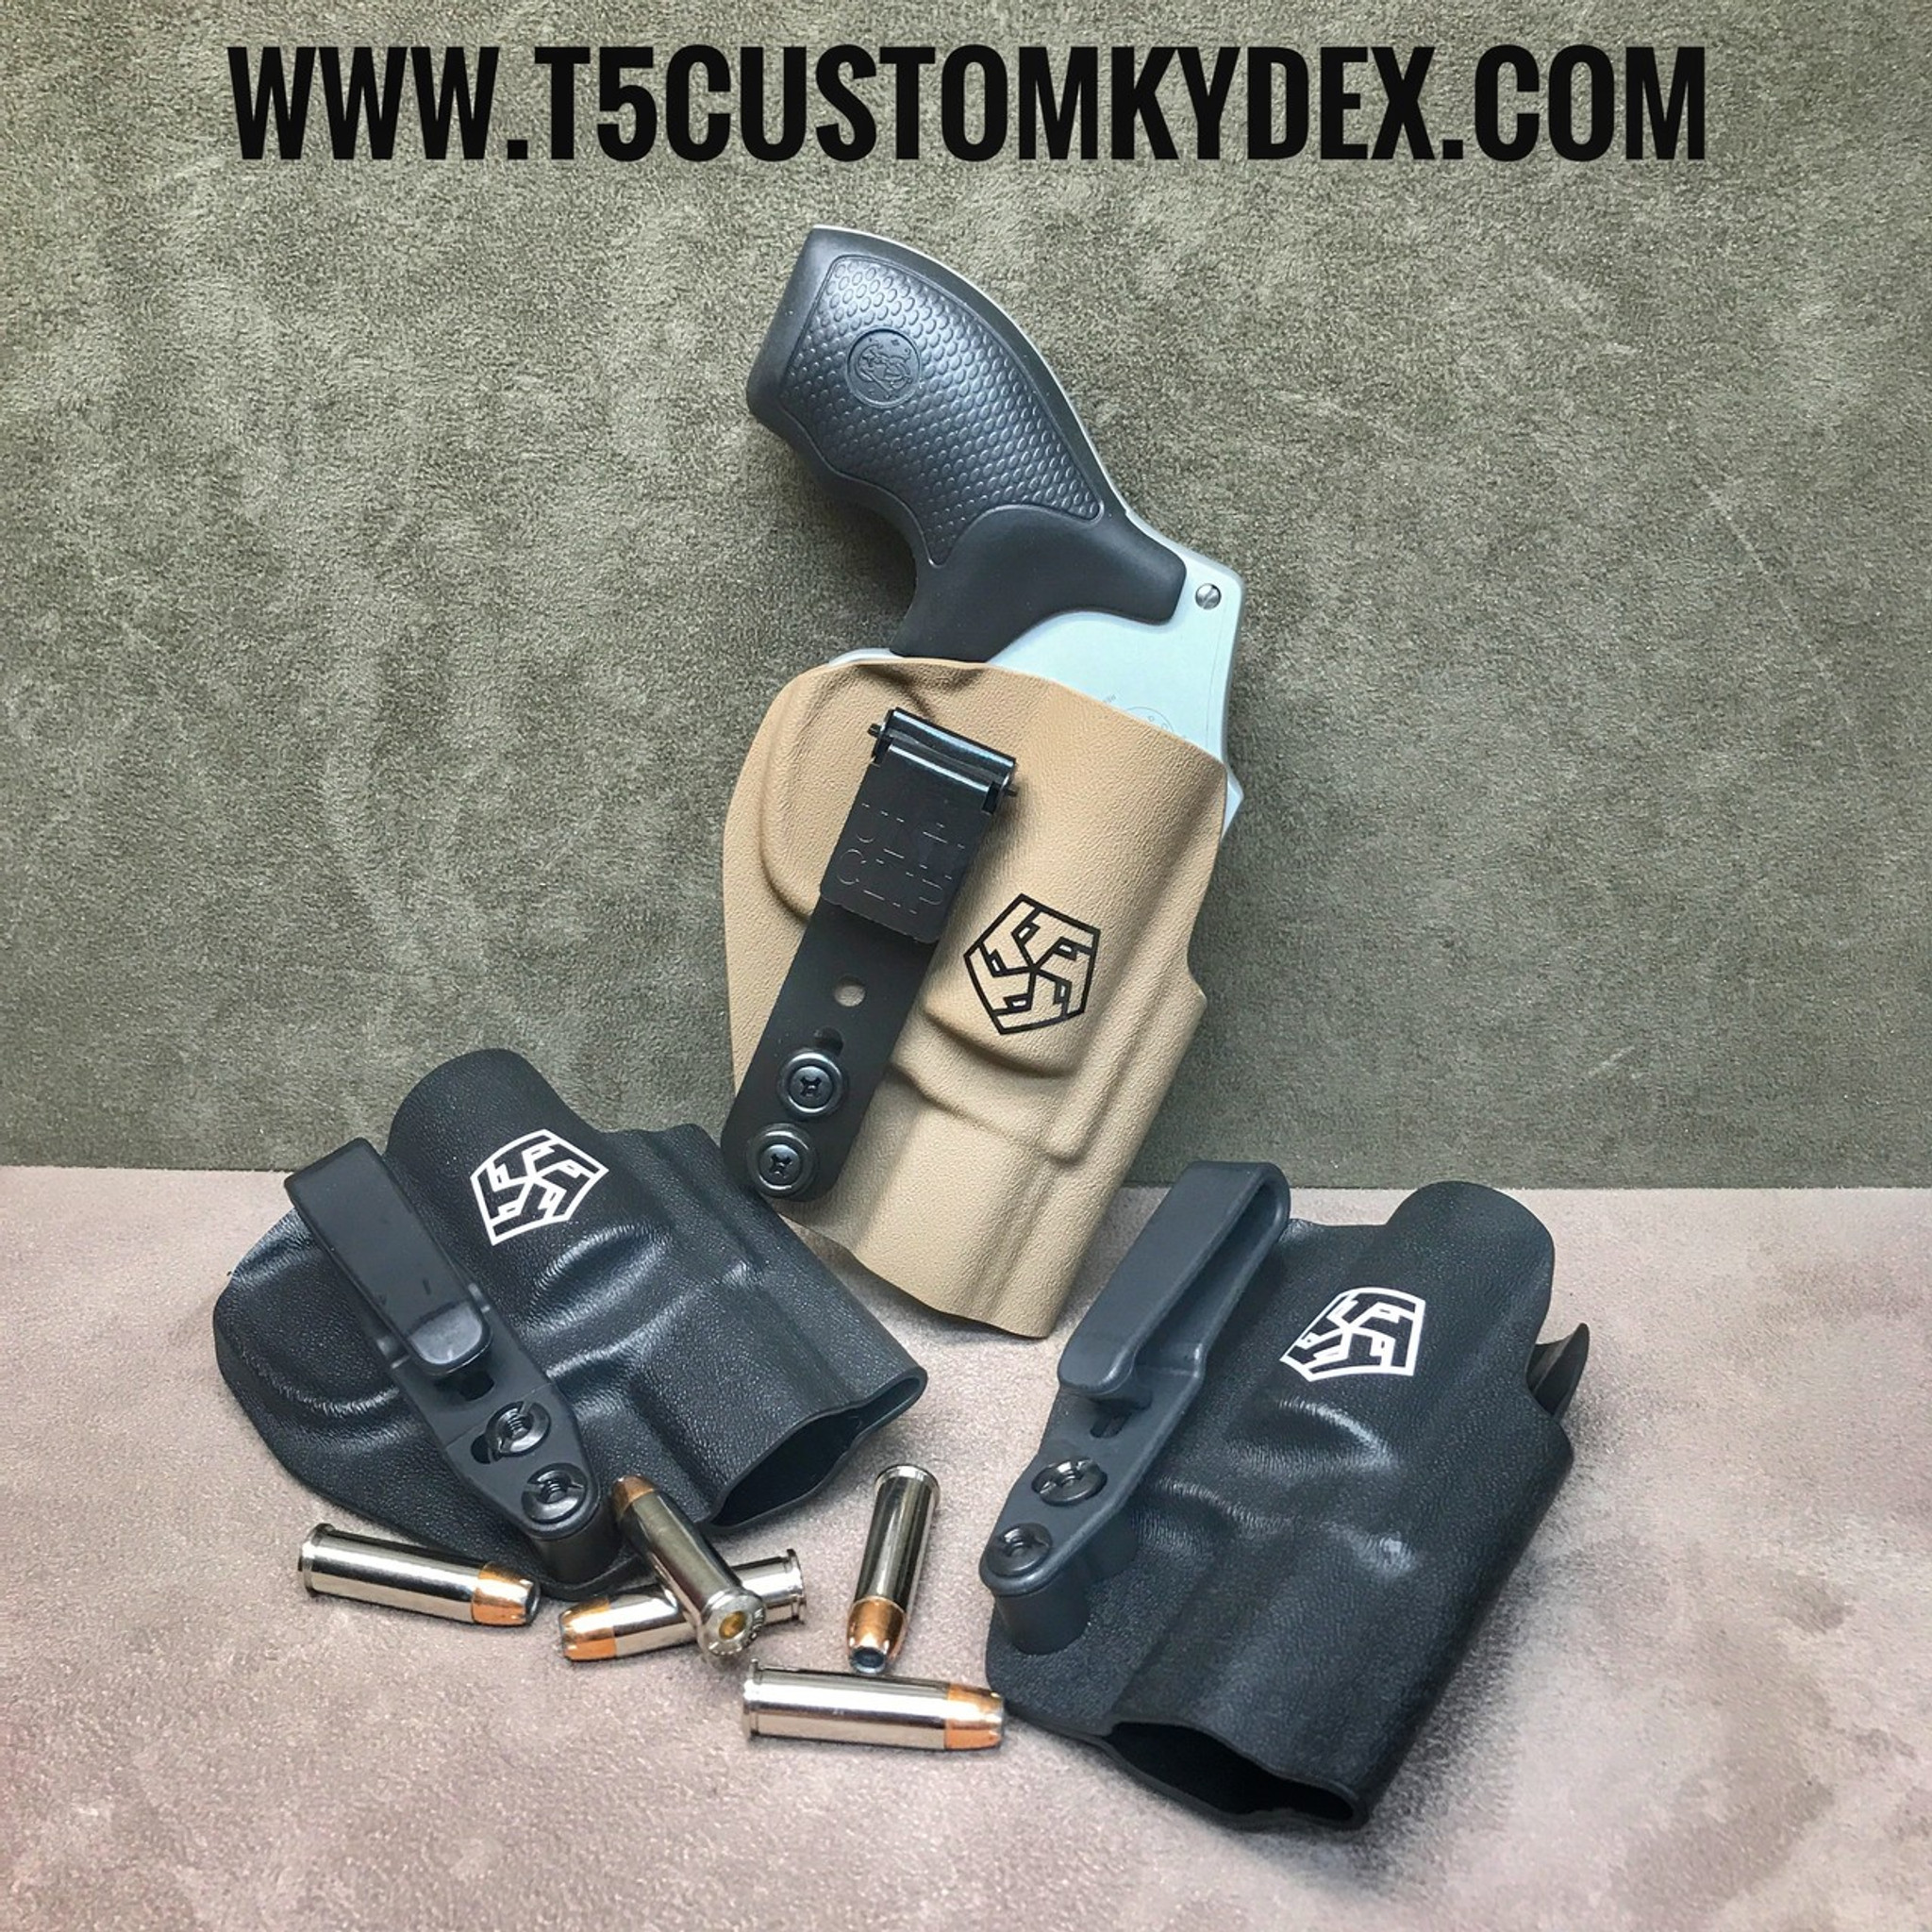 S&W J-Frame Quick Ship IWB - T5 Custom Kydex